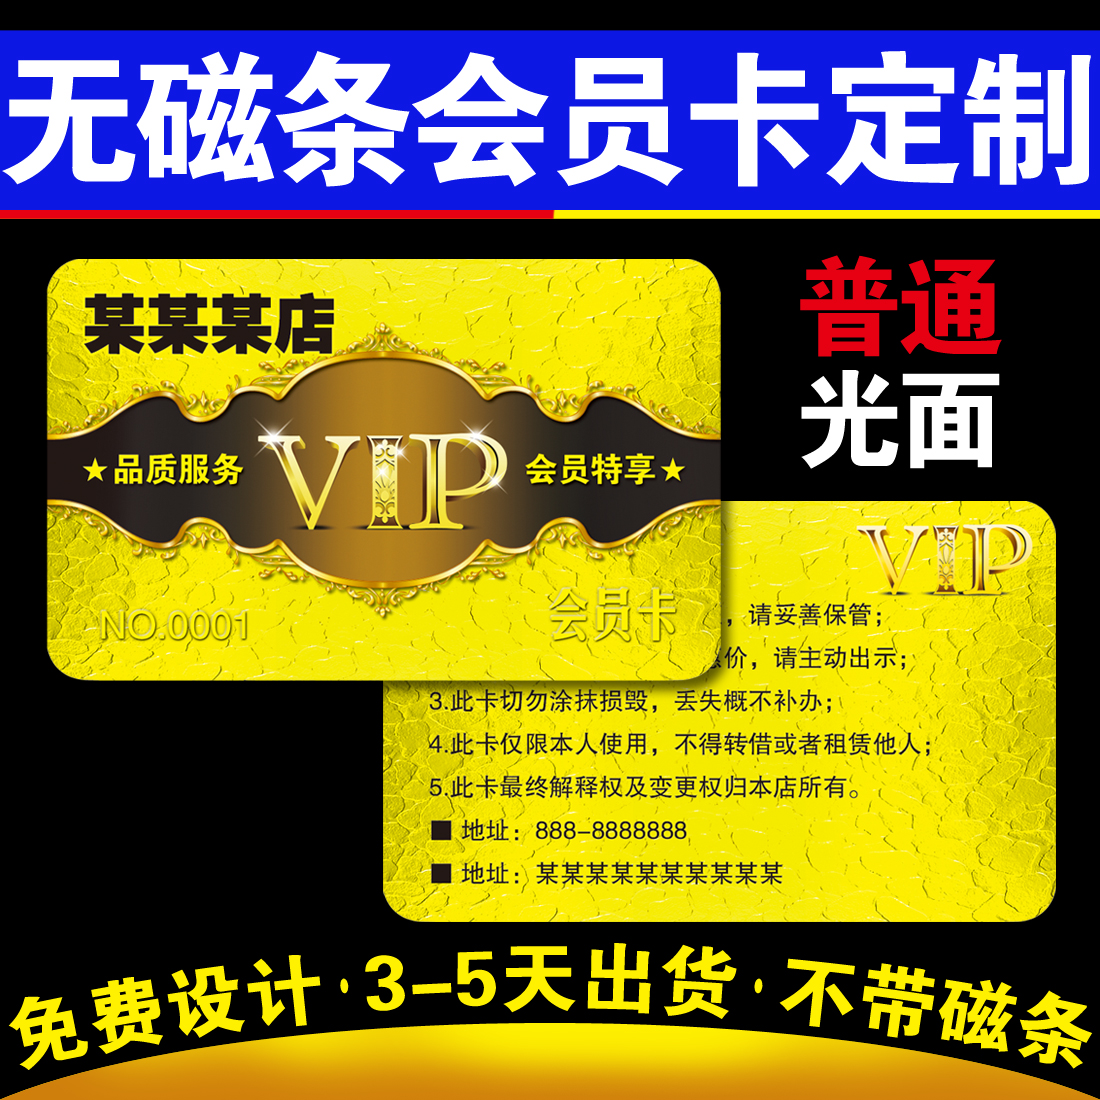 No magnet strip membership card glossy VIP card value card integral card count card processing custom production design